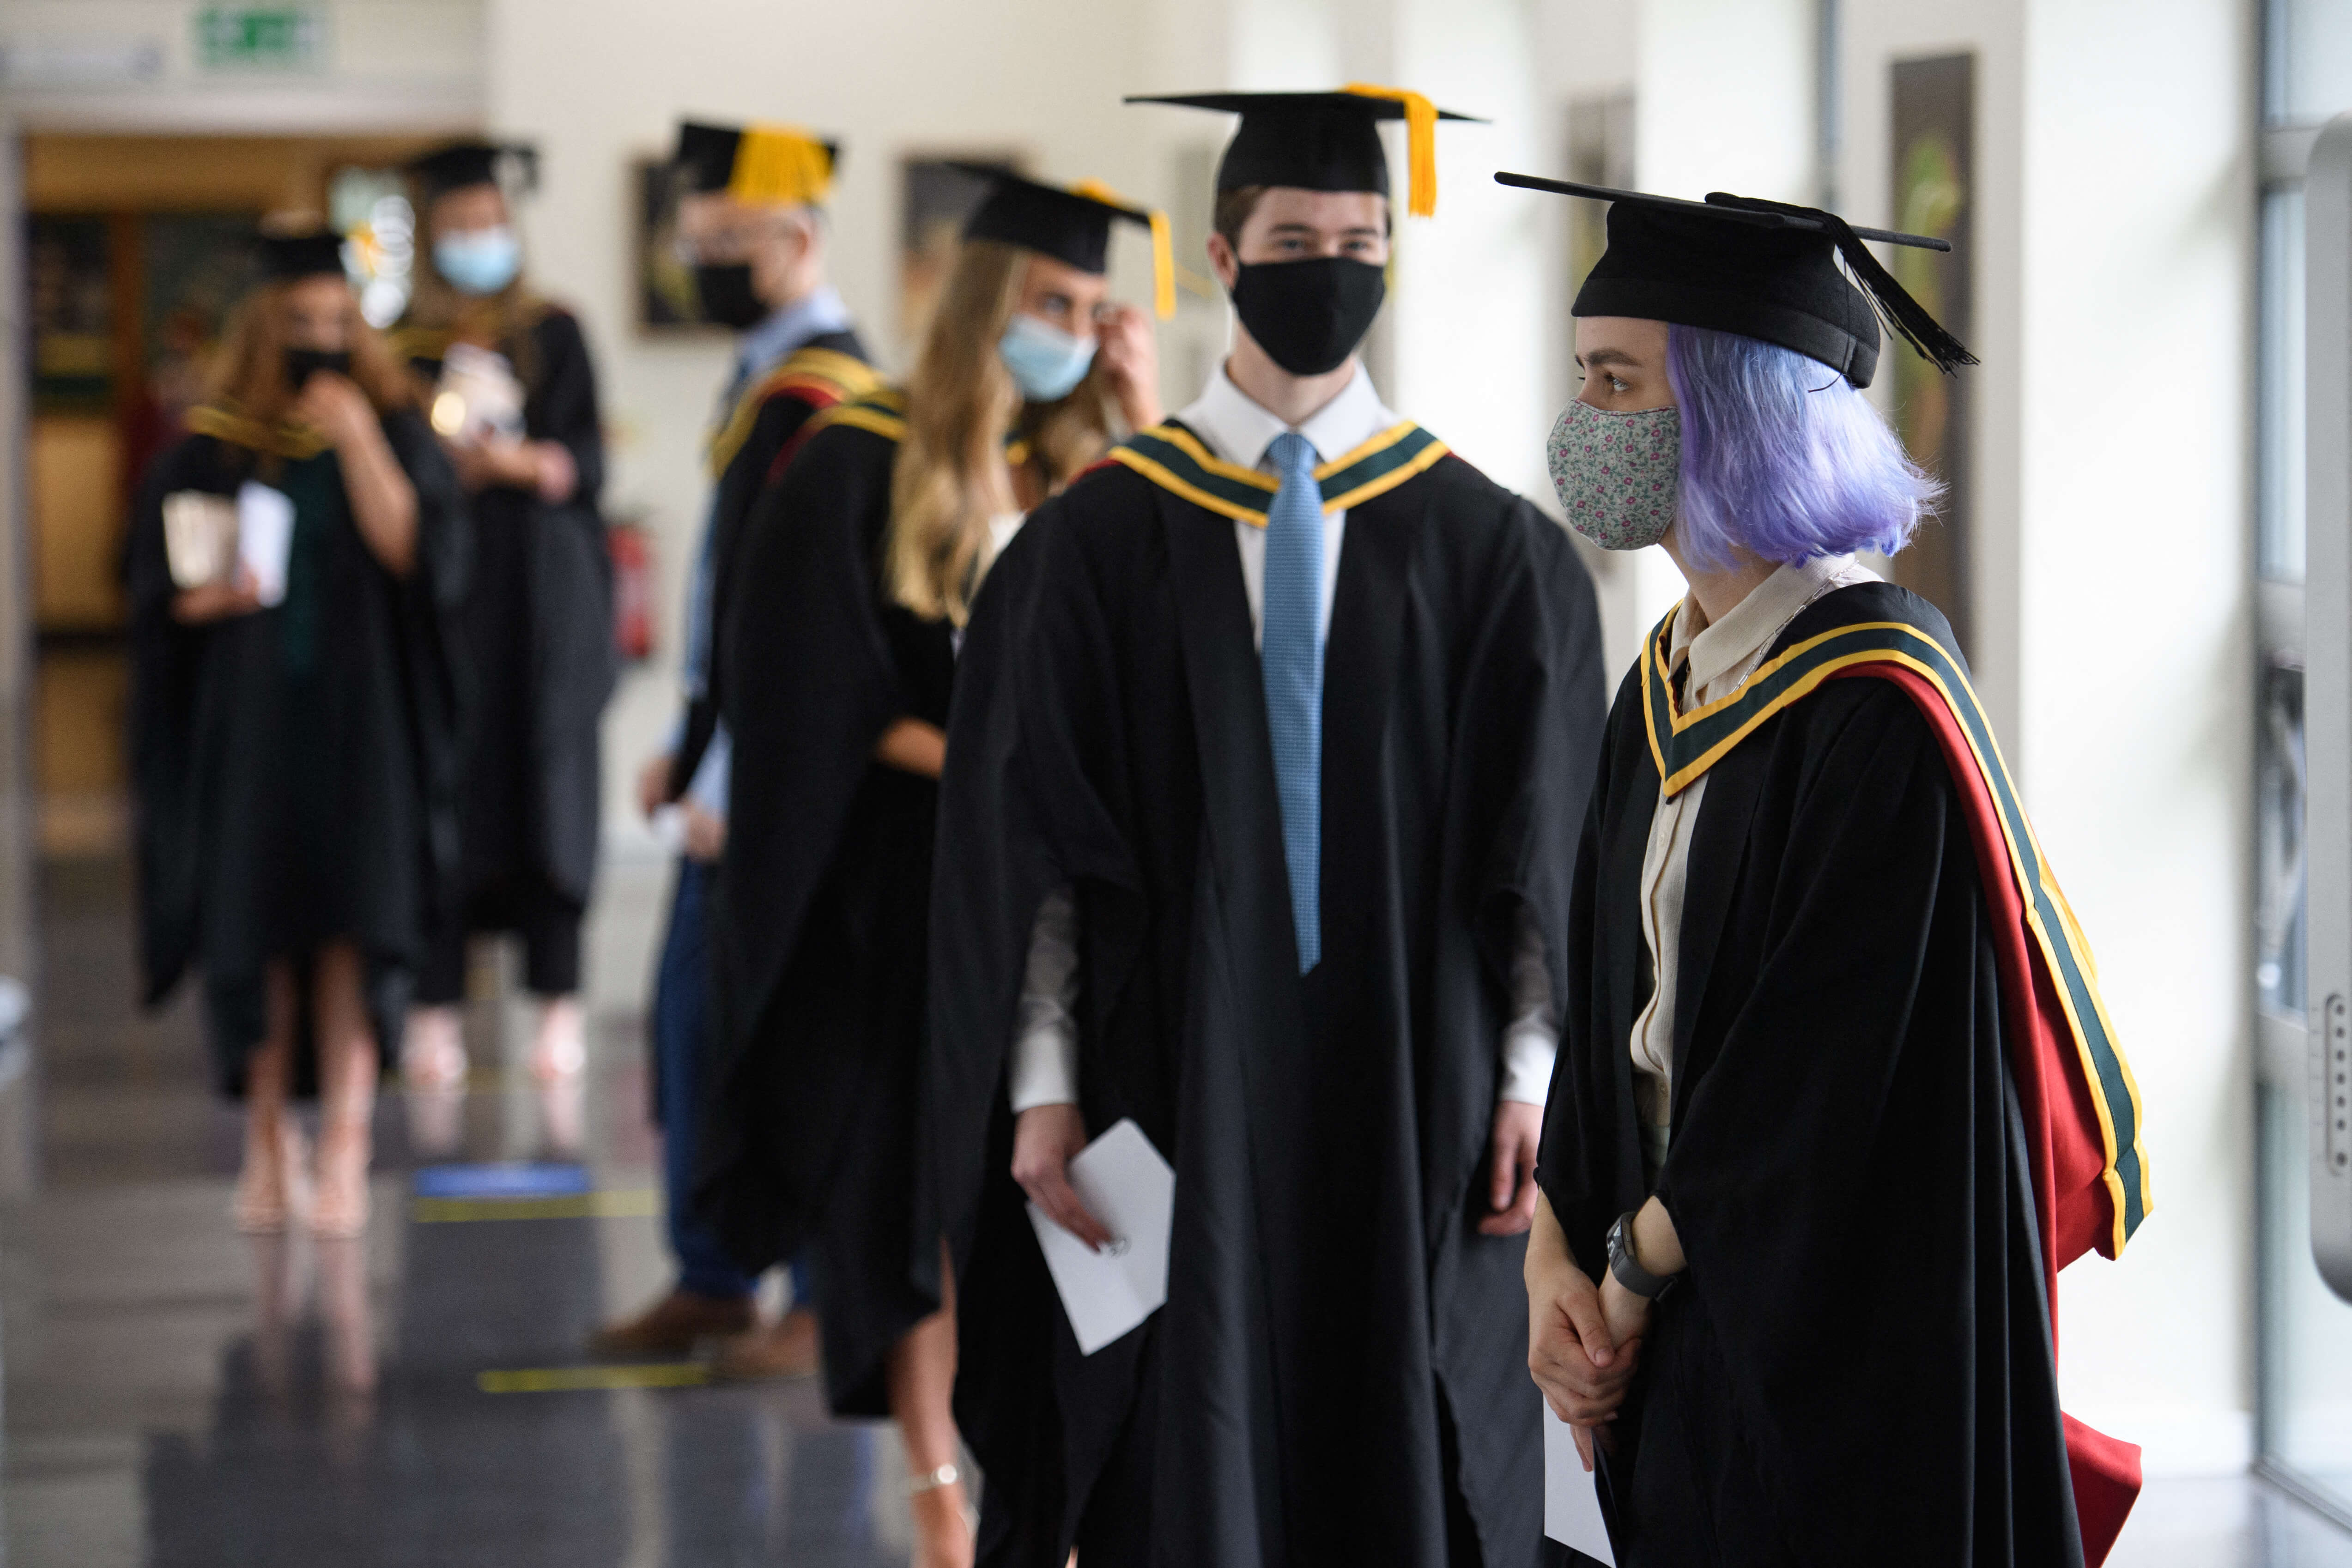 A third of UK uni students had less than 10 physical lectures since fall 2020: survey